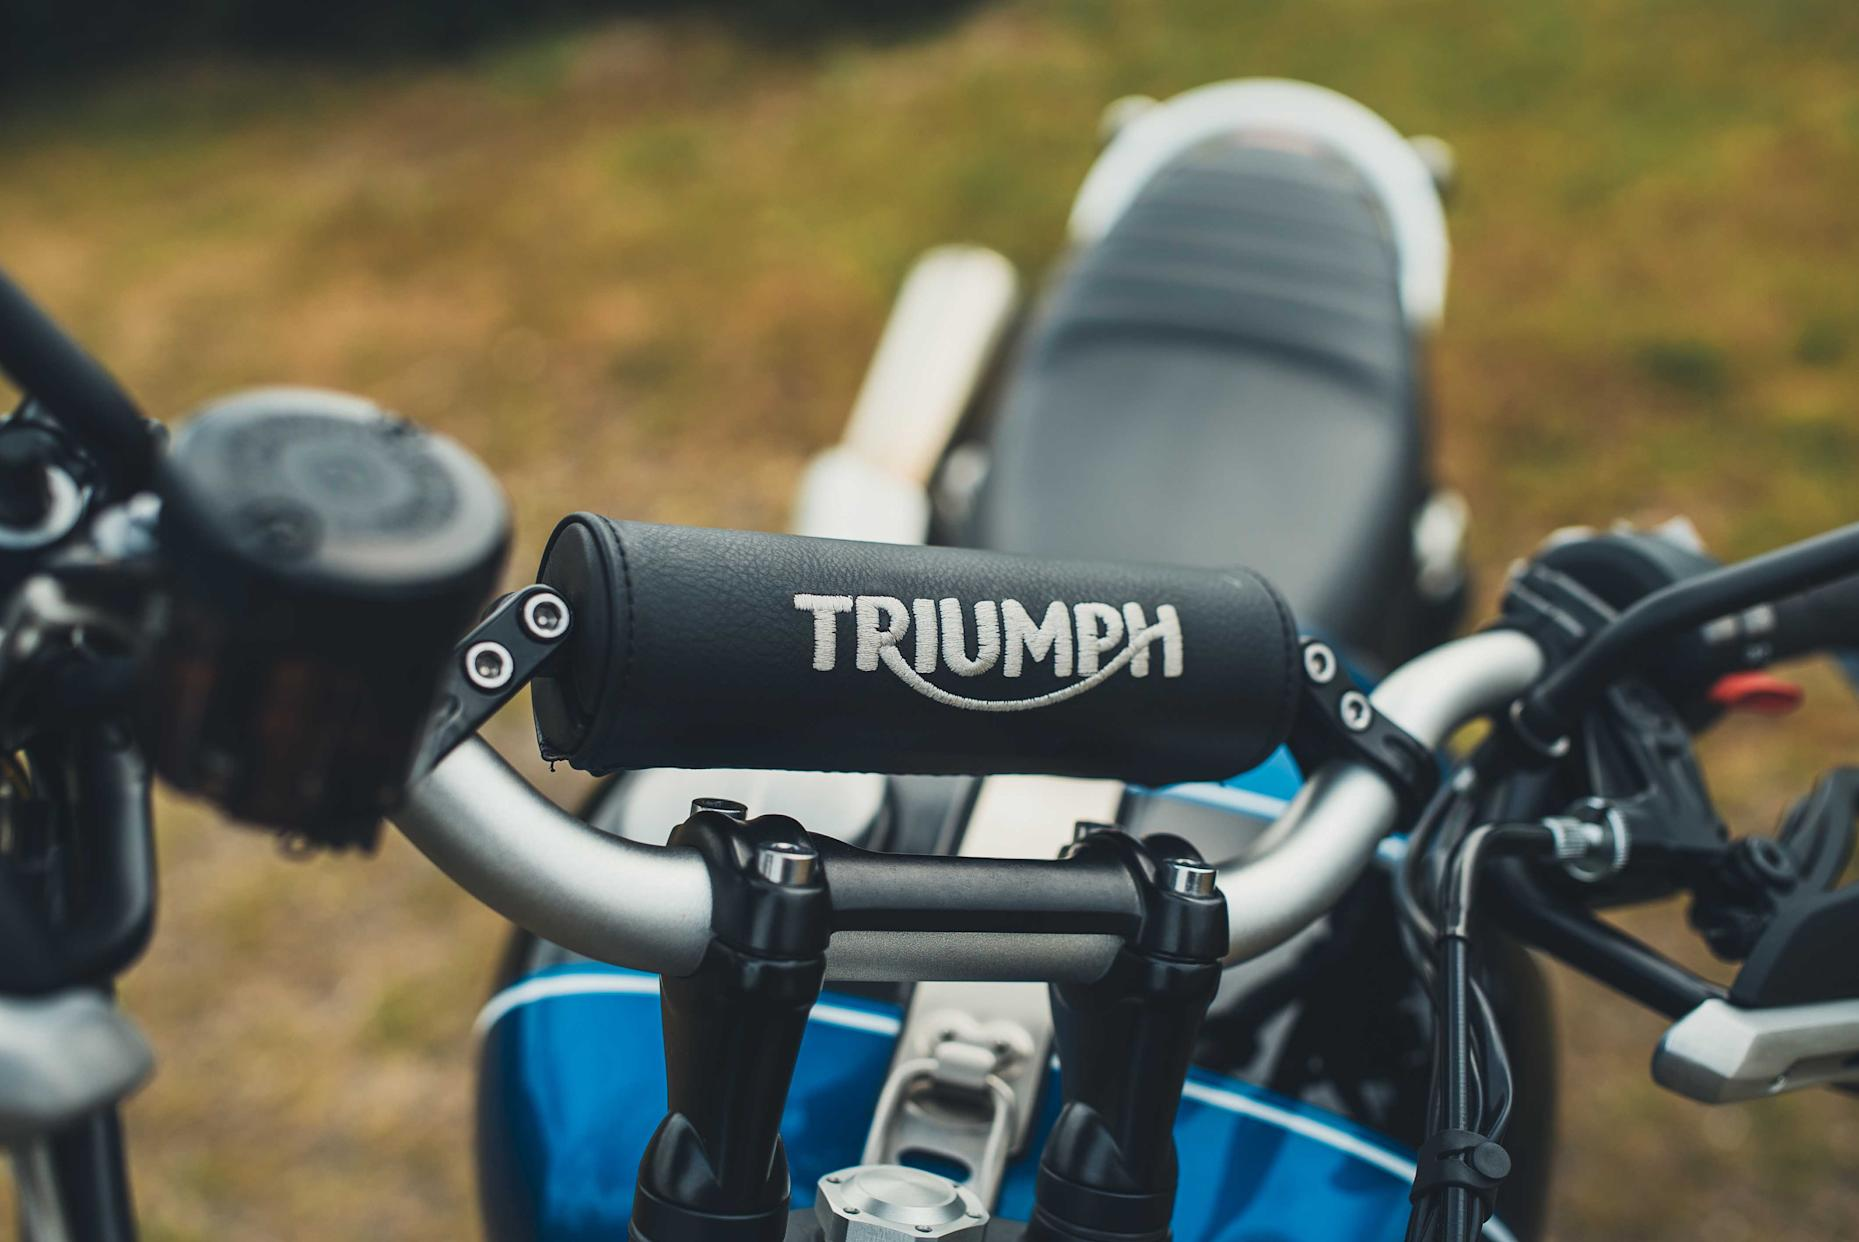 The Scrambler takes inspiration from all areas of motorcycling